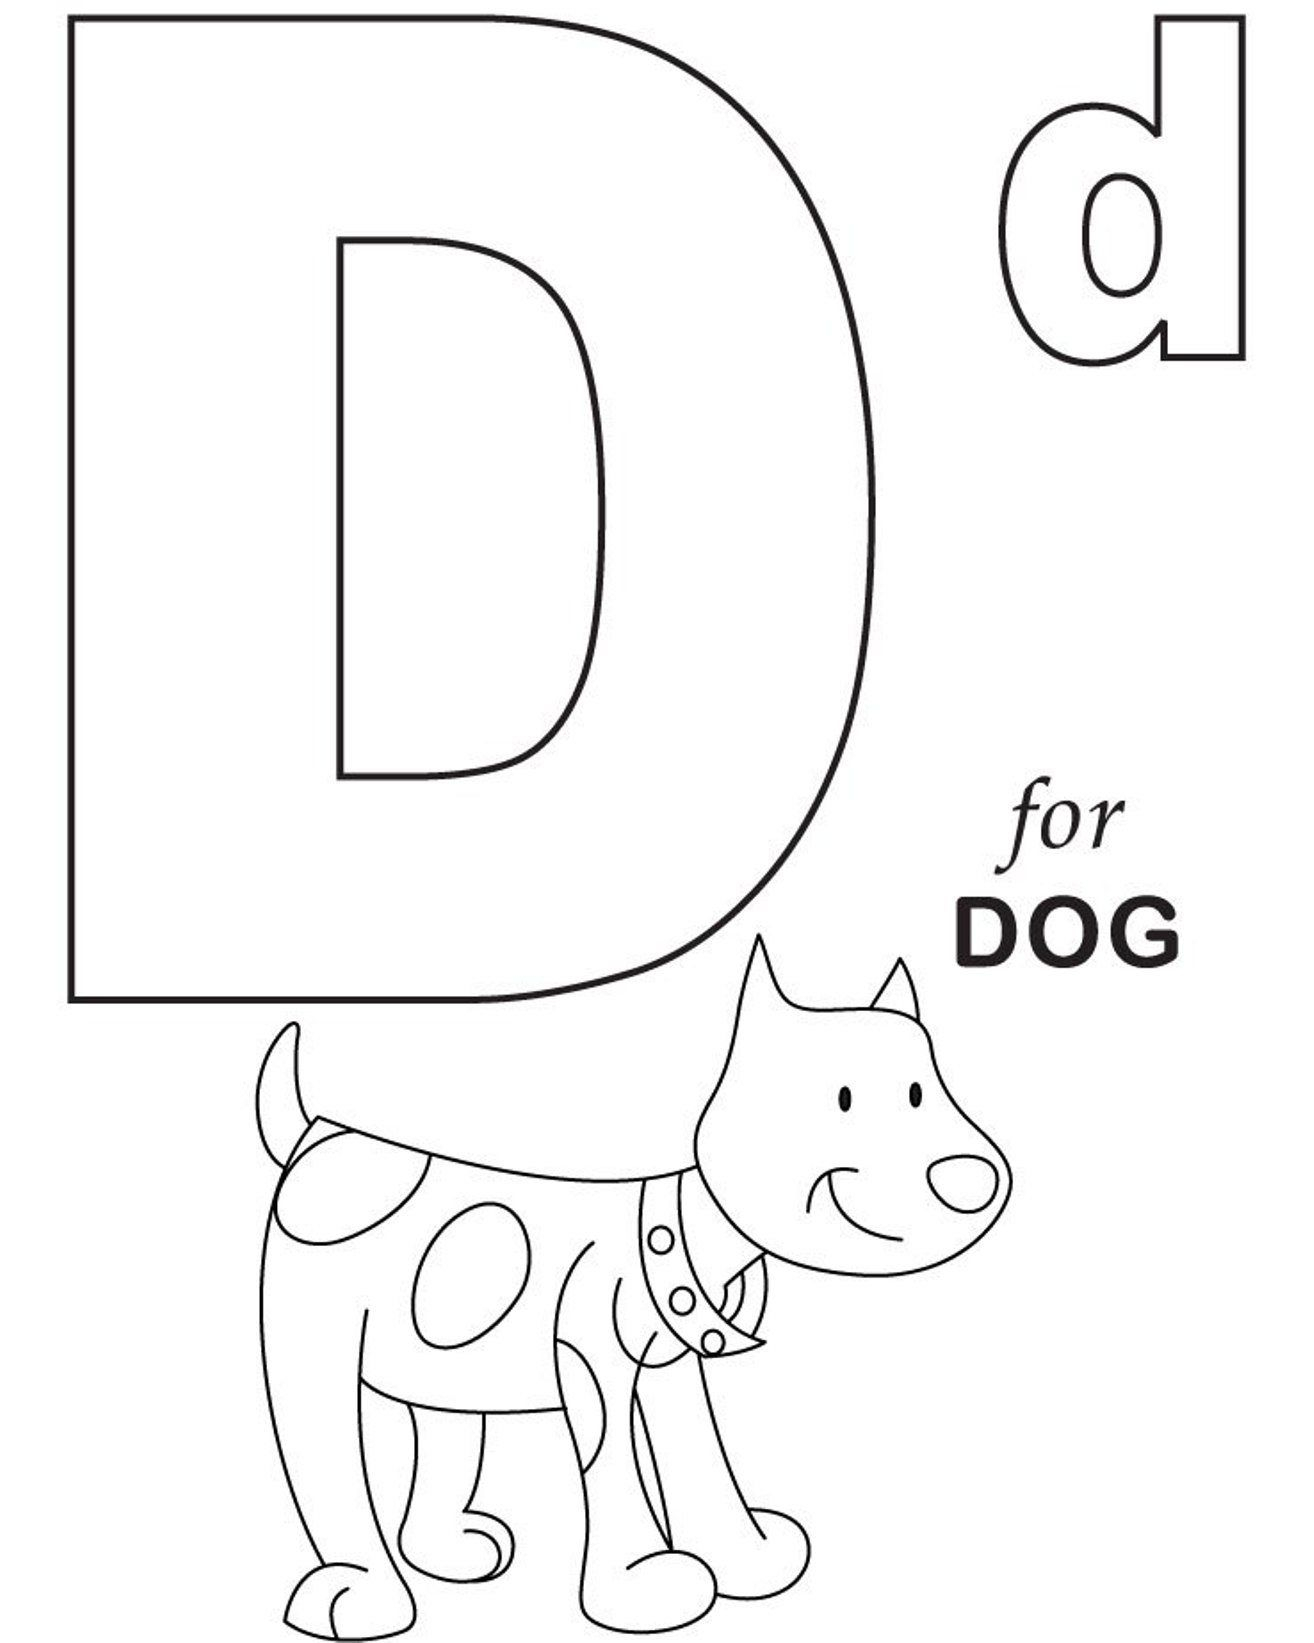 Coloring : Pages Alphabet For Dog Printable Letter throughout Alphabet Colouring Worksheets For Preschoolers